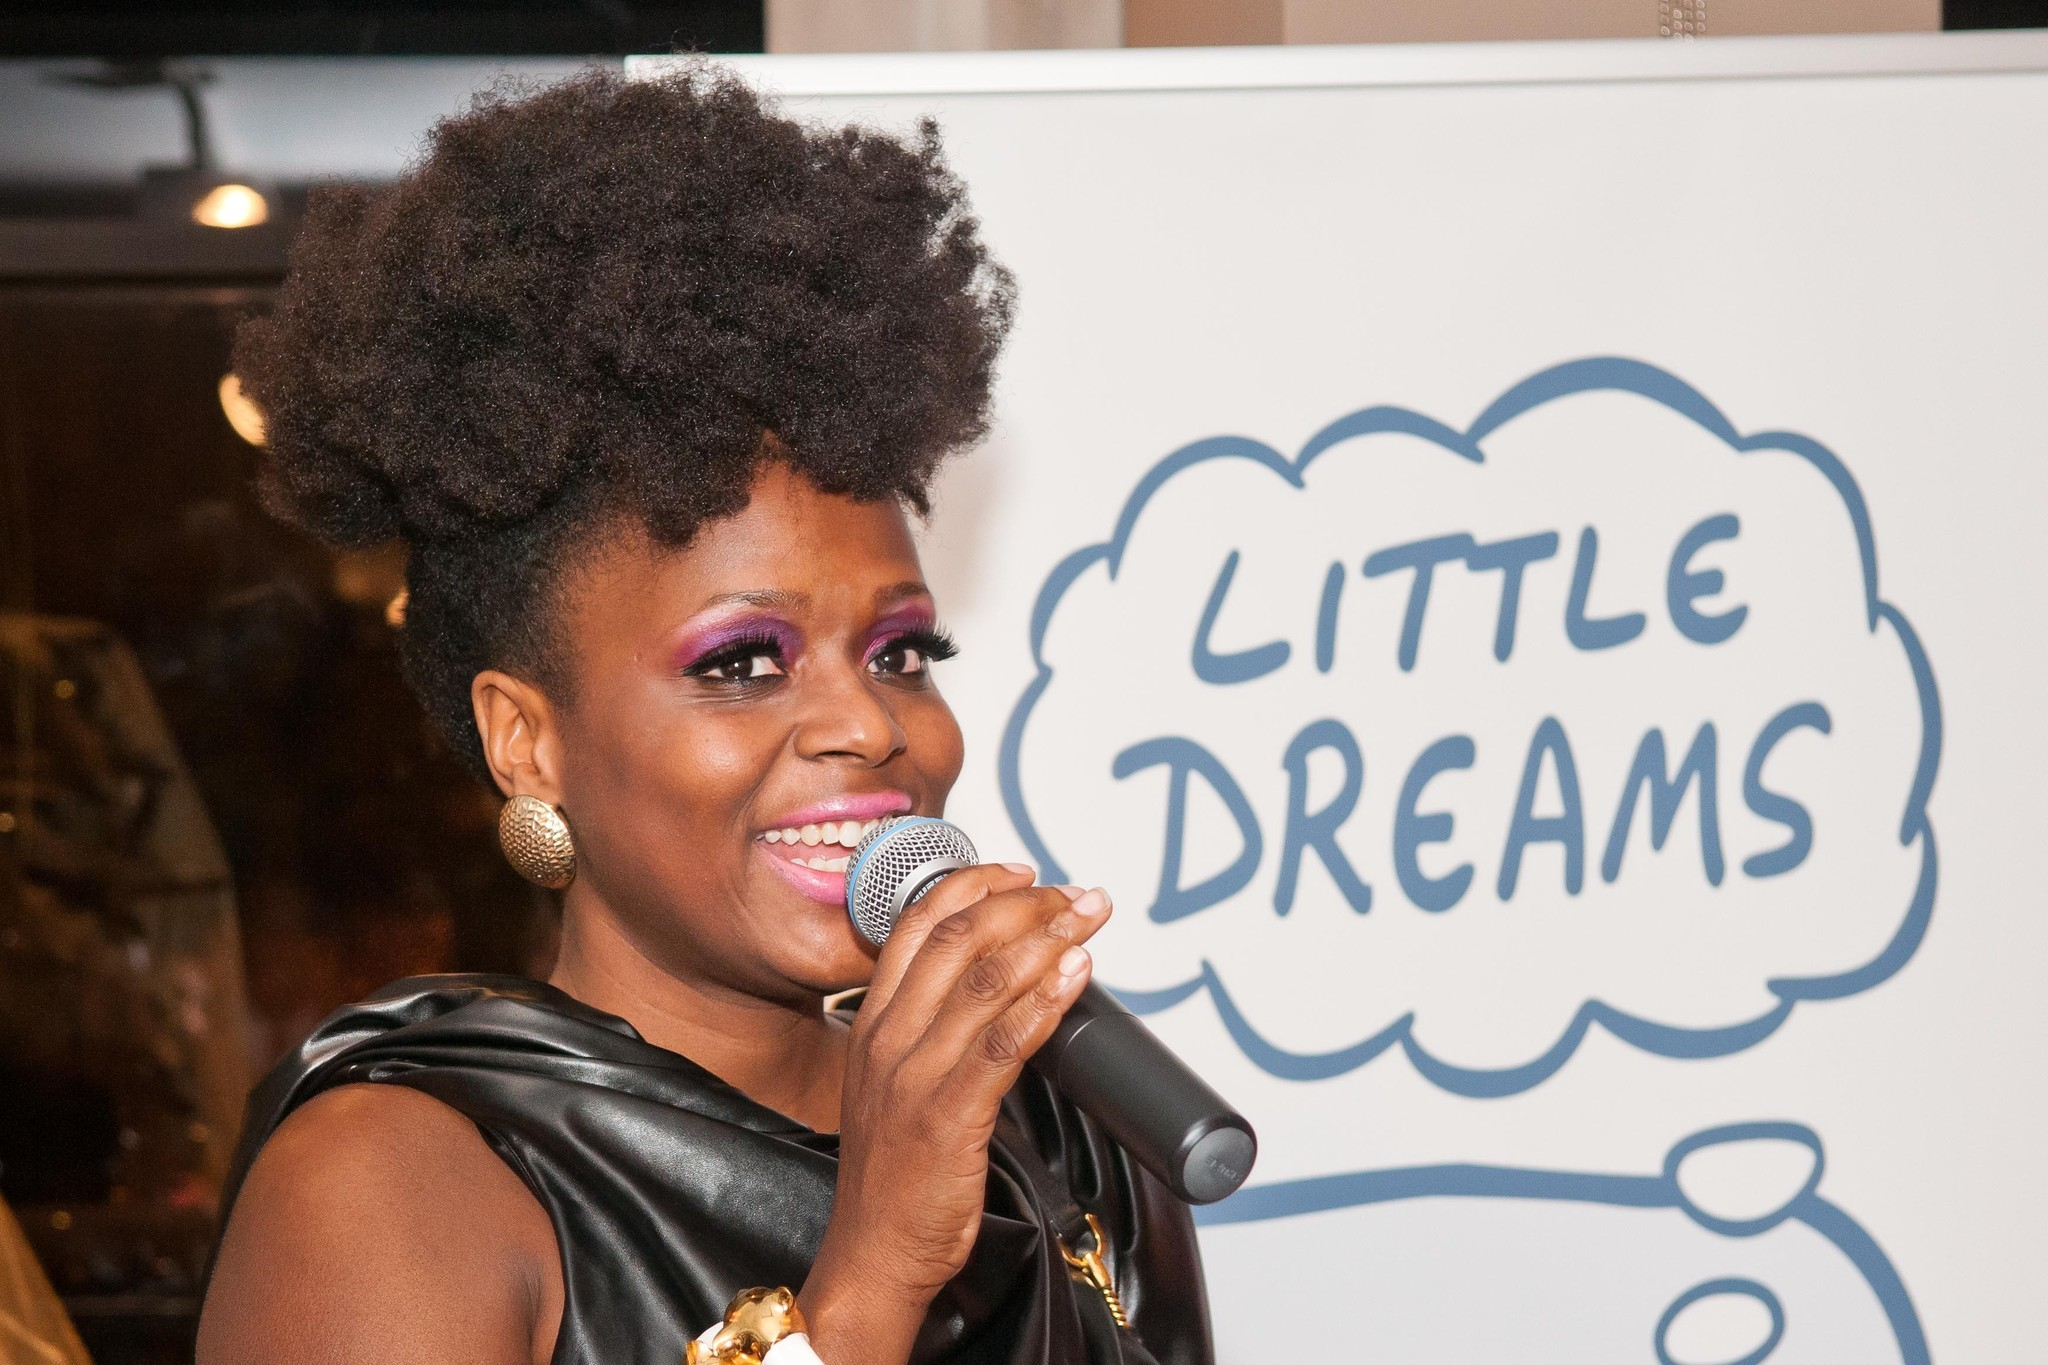 The Little Dreams Foundation fundraiser - Little Dreams Foundation